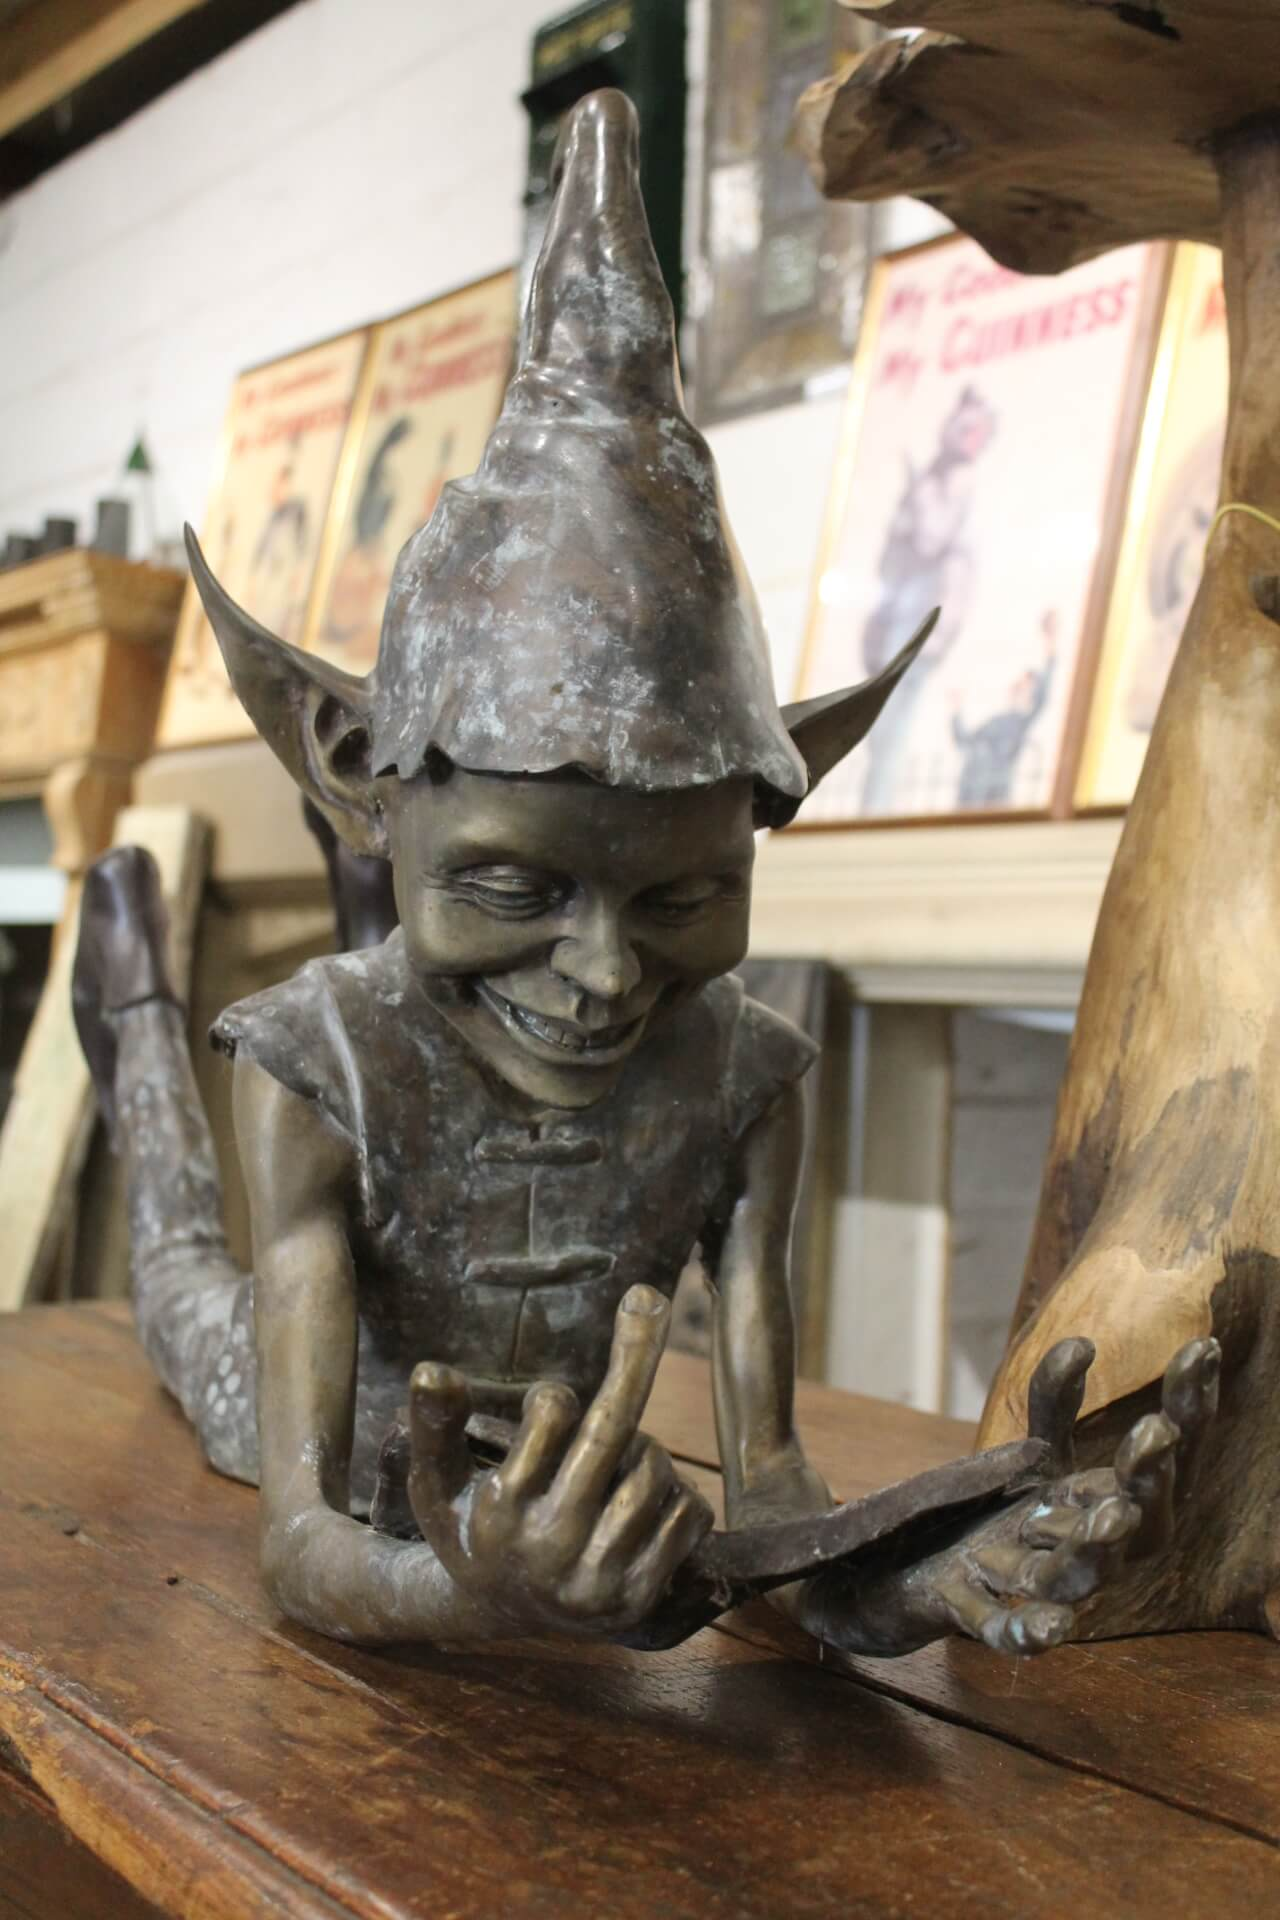 z* SOLD - Similar Wanted - Large Bronze Pixie / Elf ...